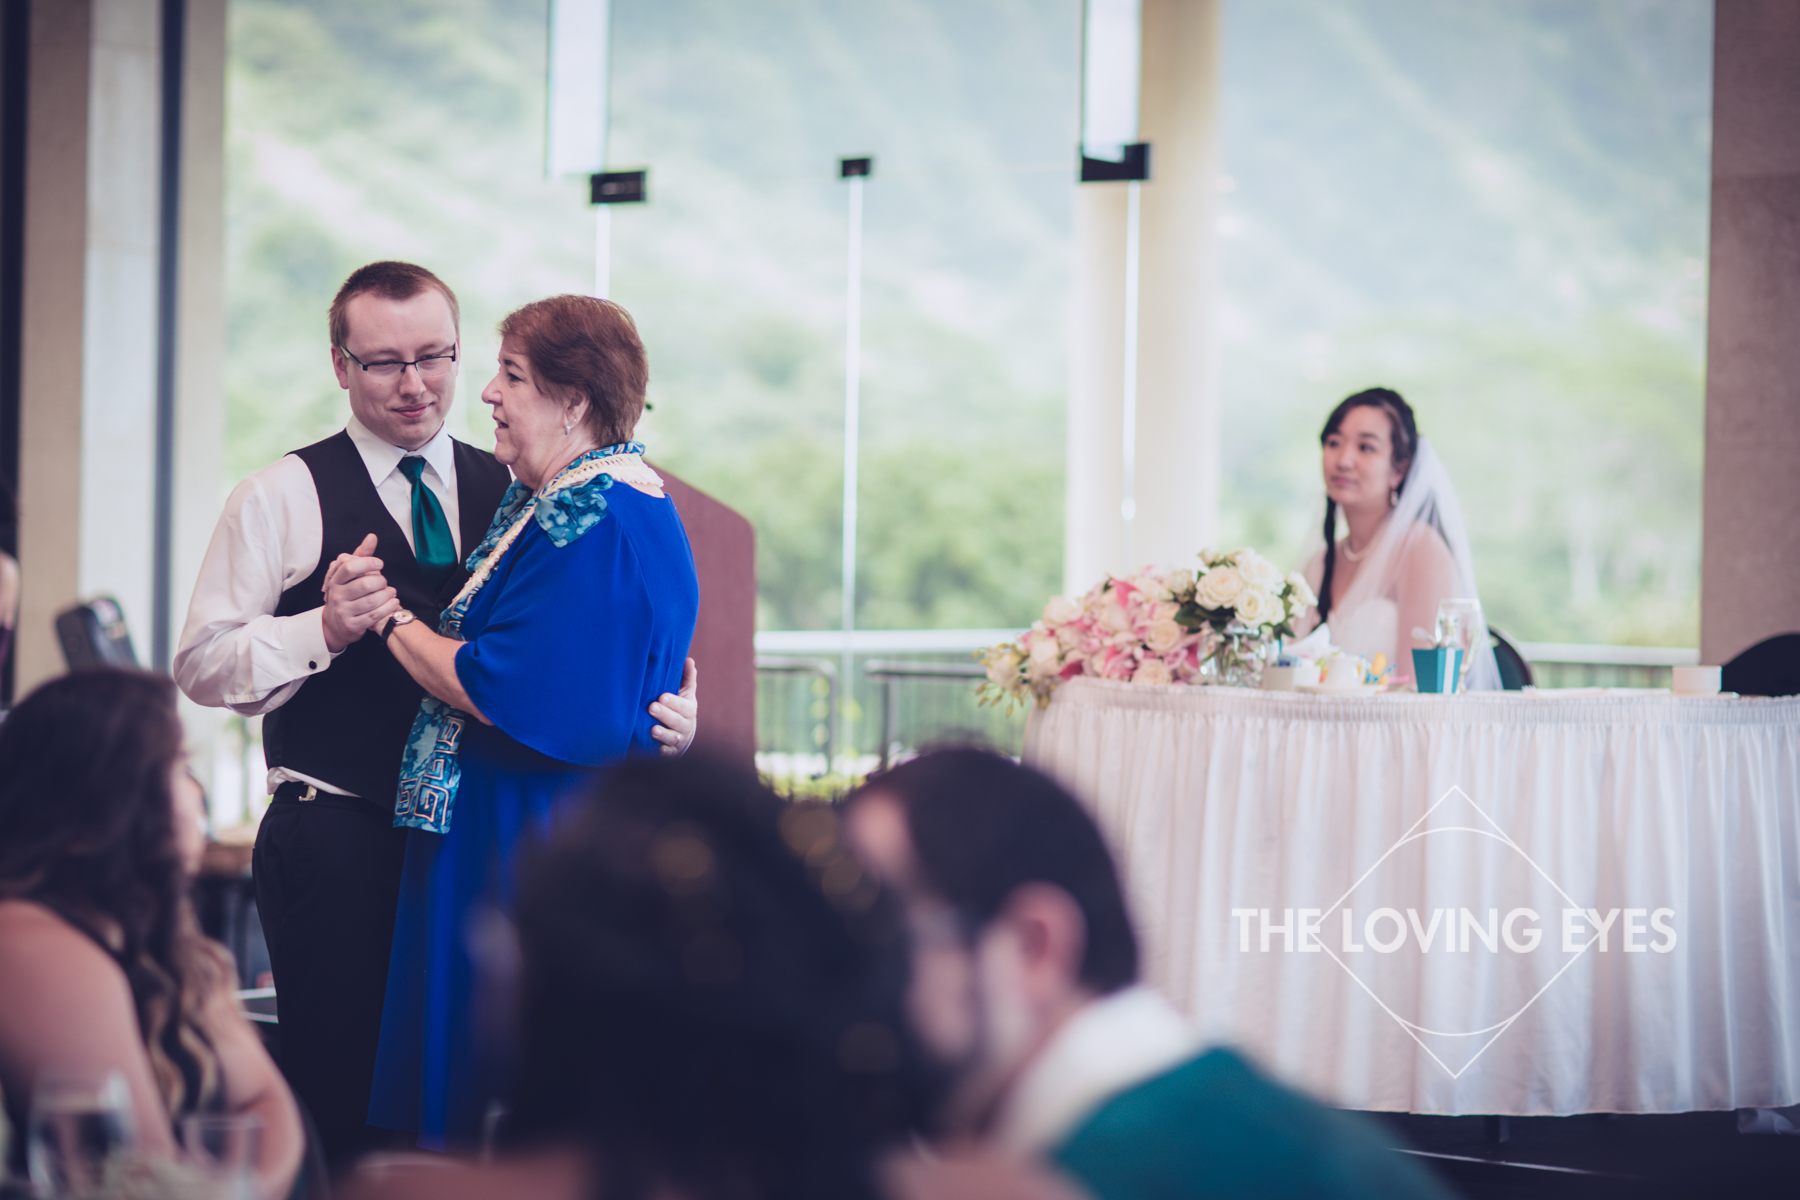 Mother and son dance during Wedding reception at Koolau Ballroom in Hawaii